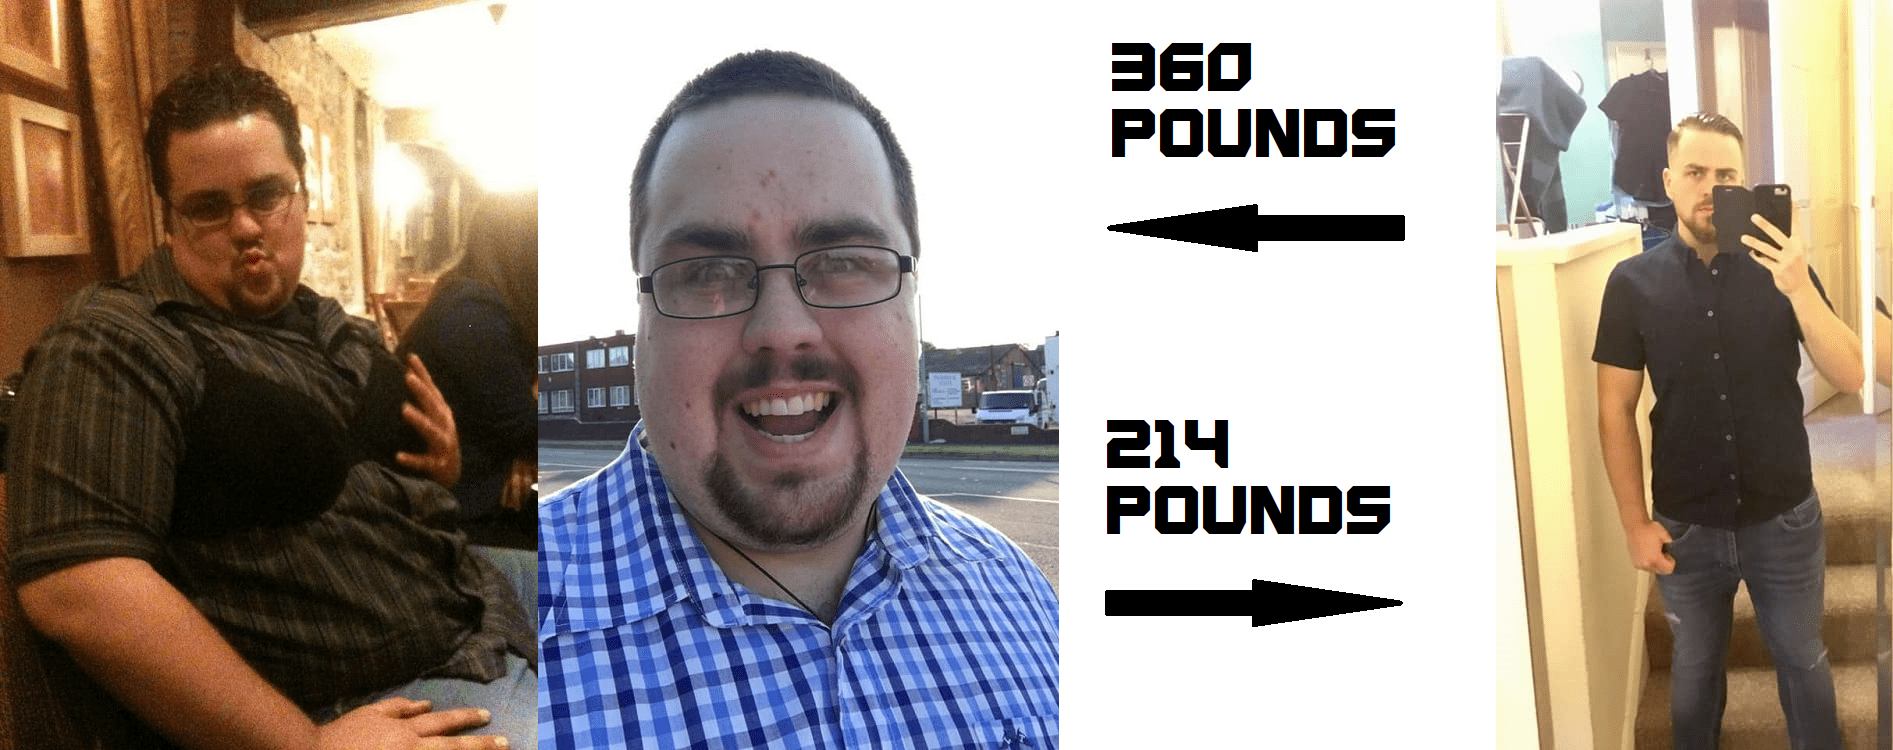 [IMAGE] Ended a relationship 2 years ago, fulfilled a life goal of losing the weight after then.